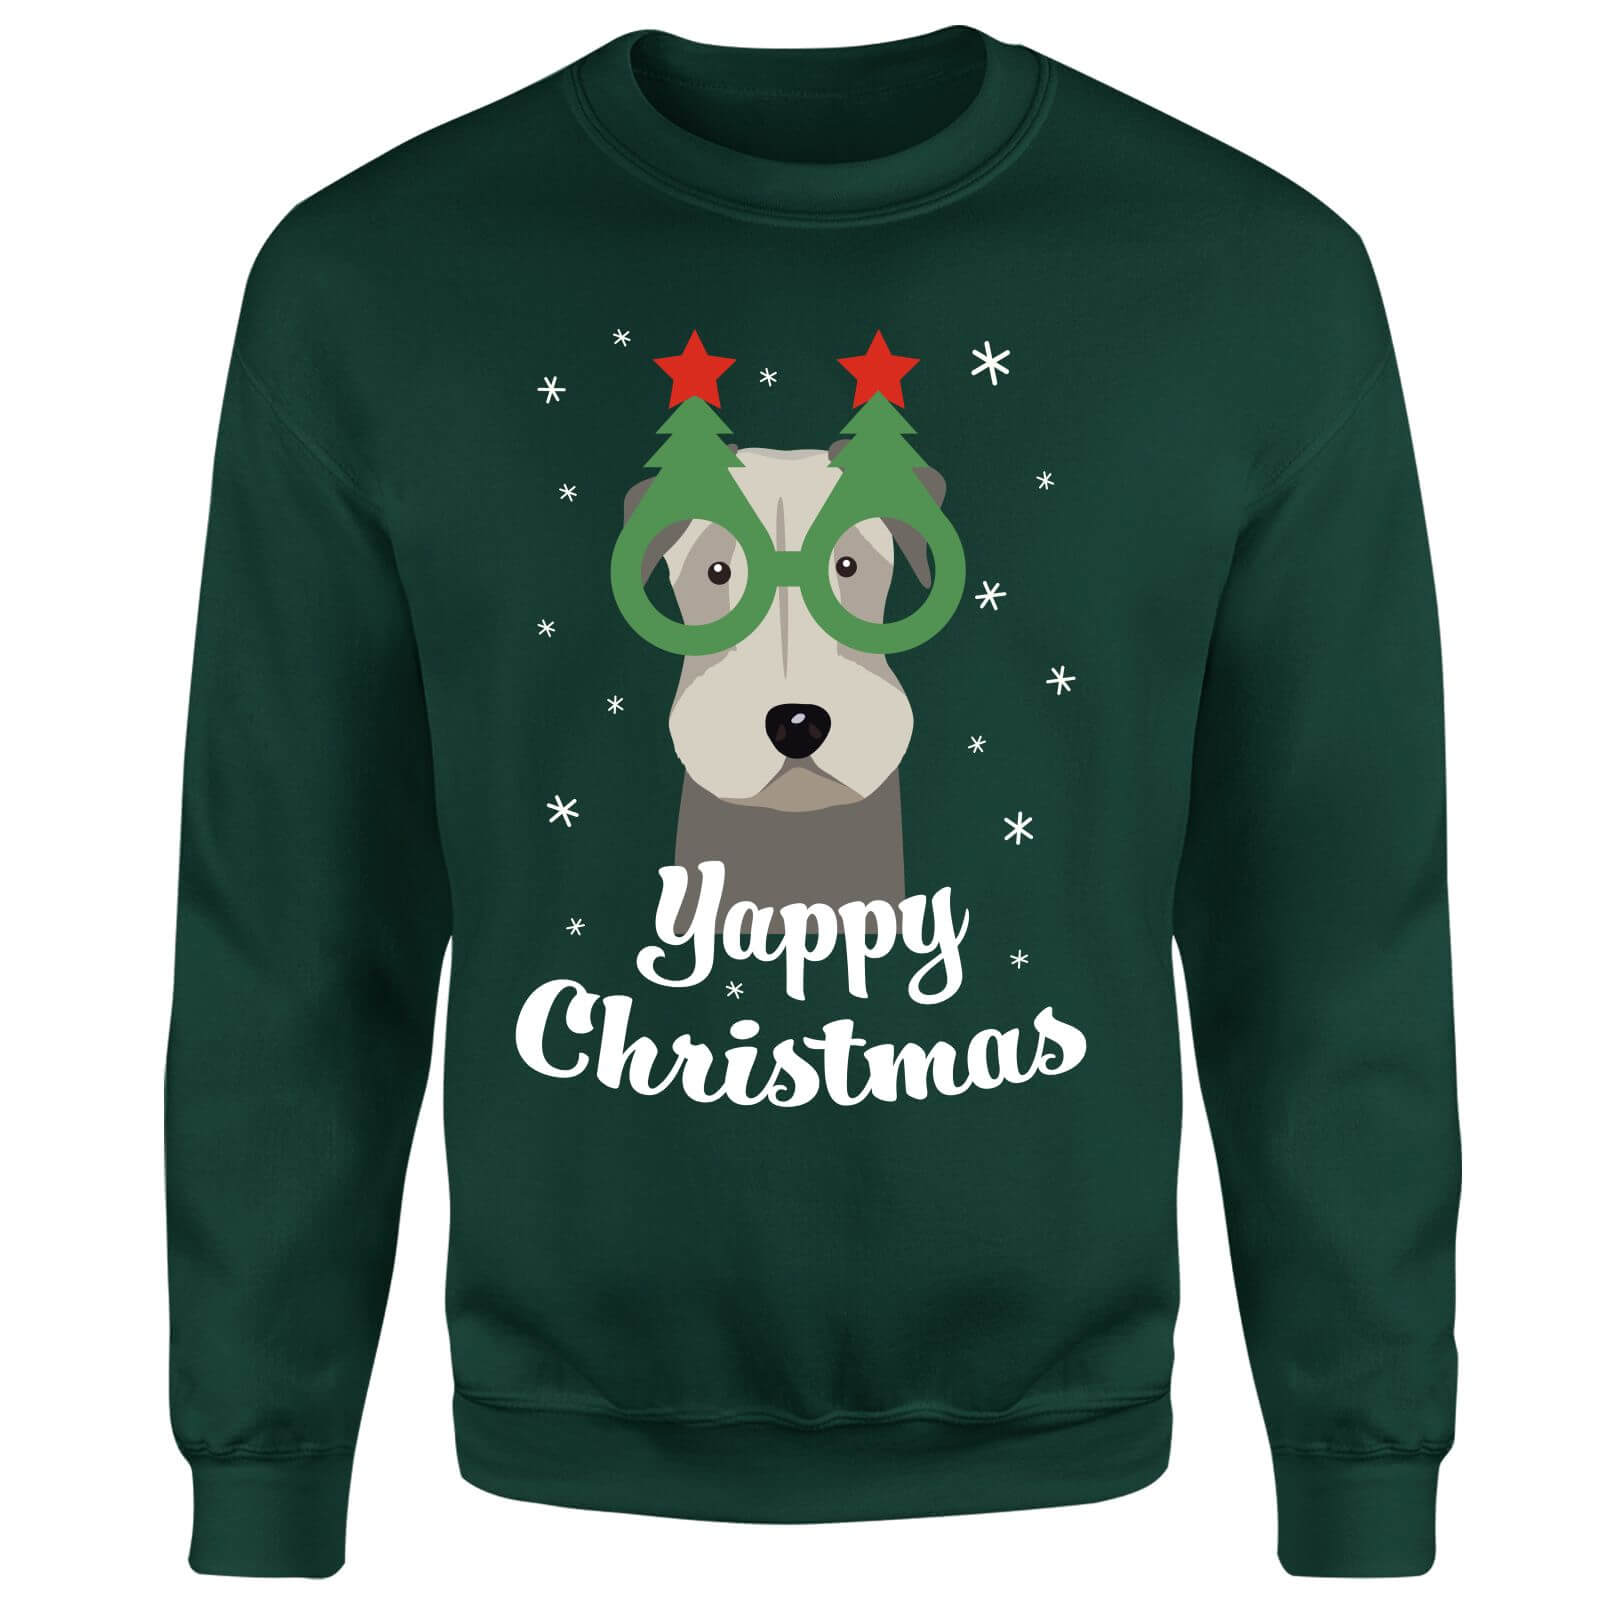 Yappy Christmas Sweatshirt - Forest Green